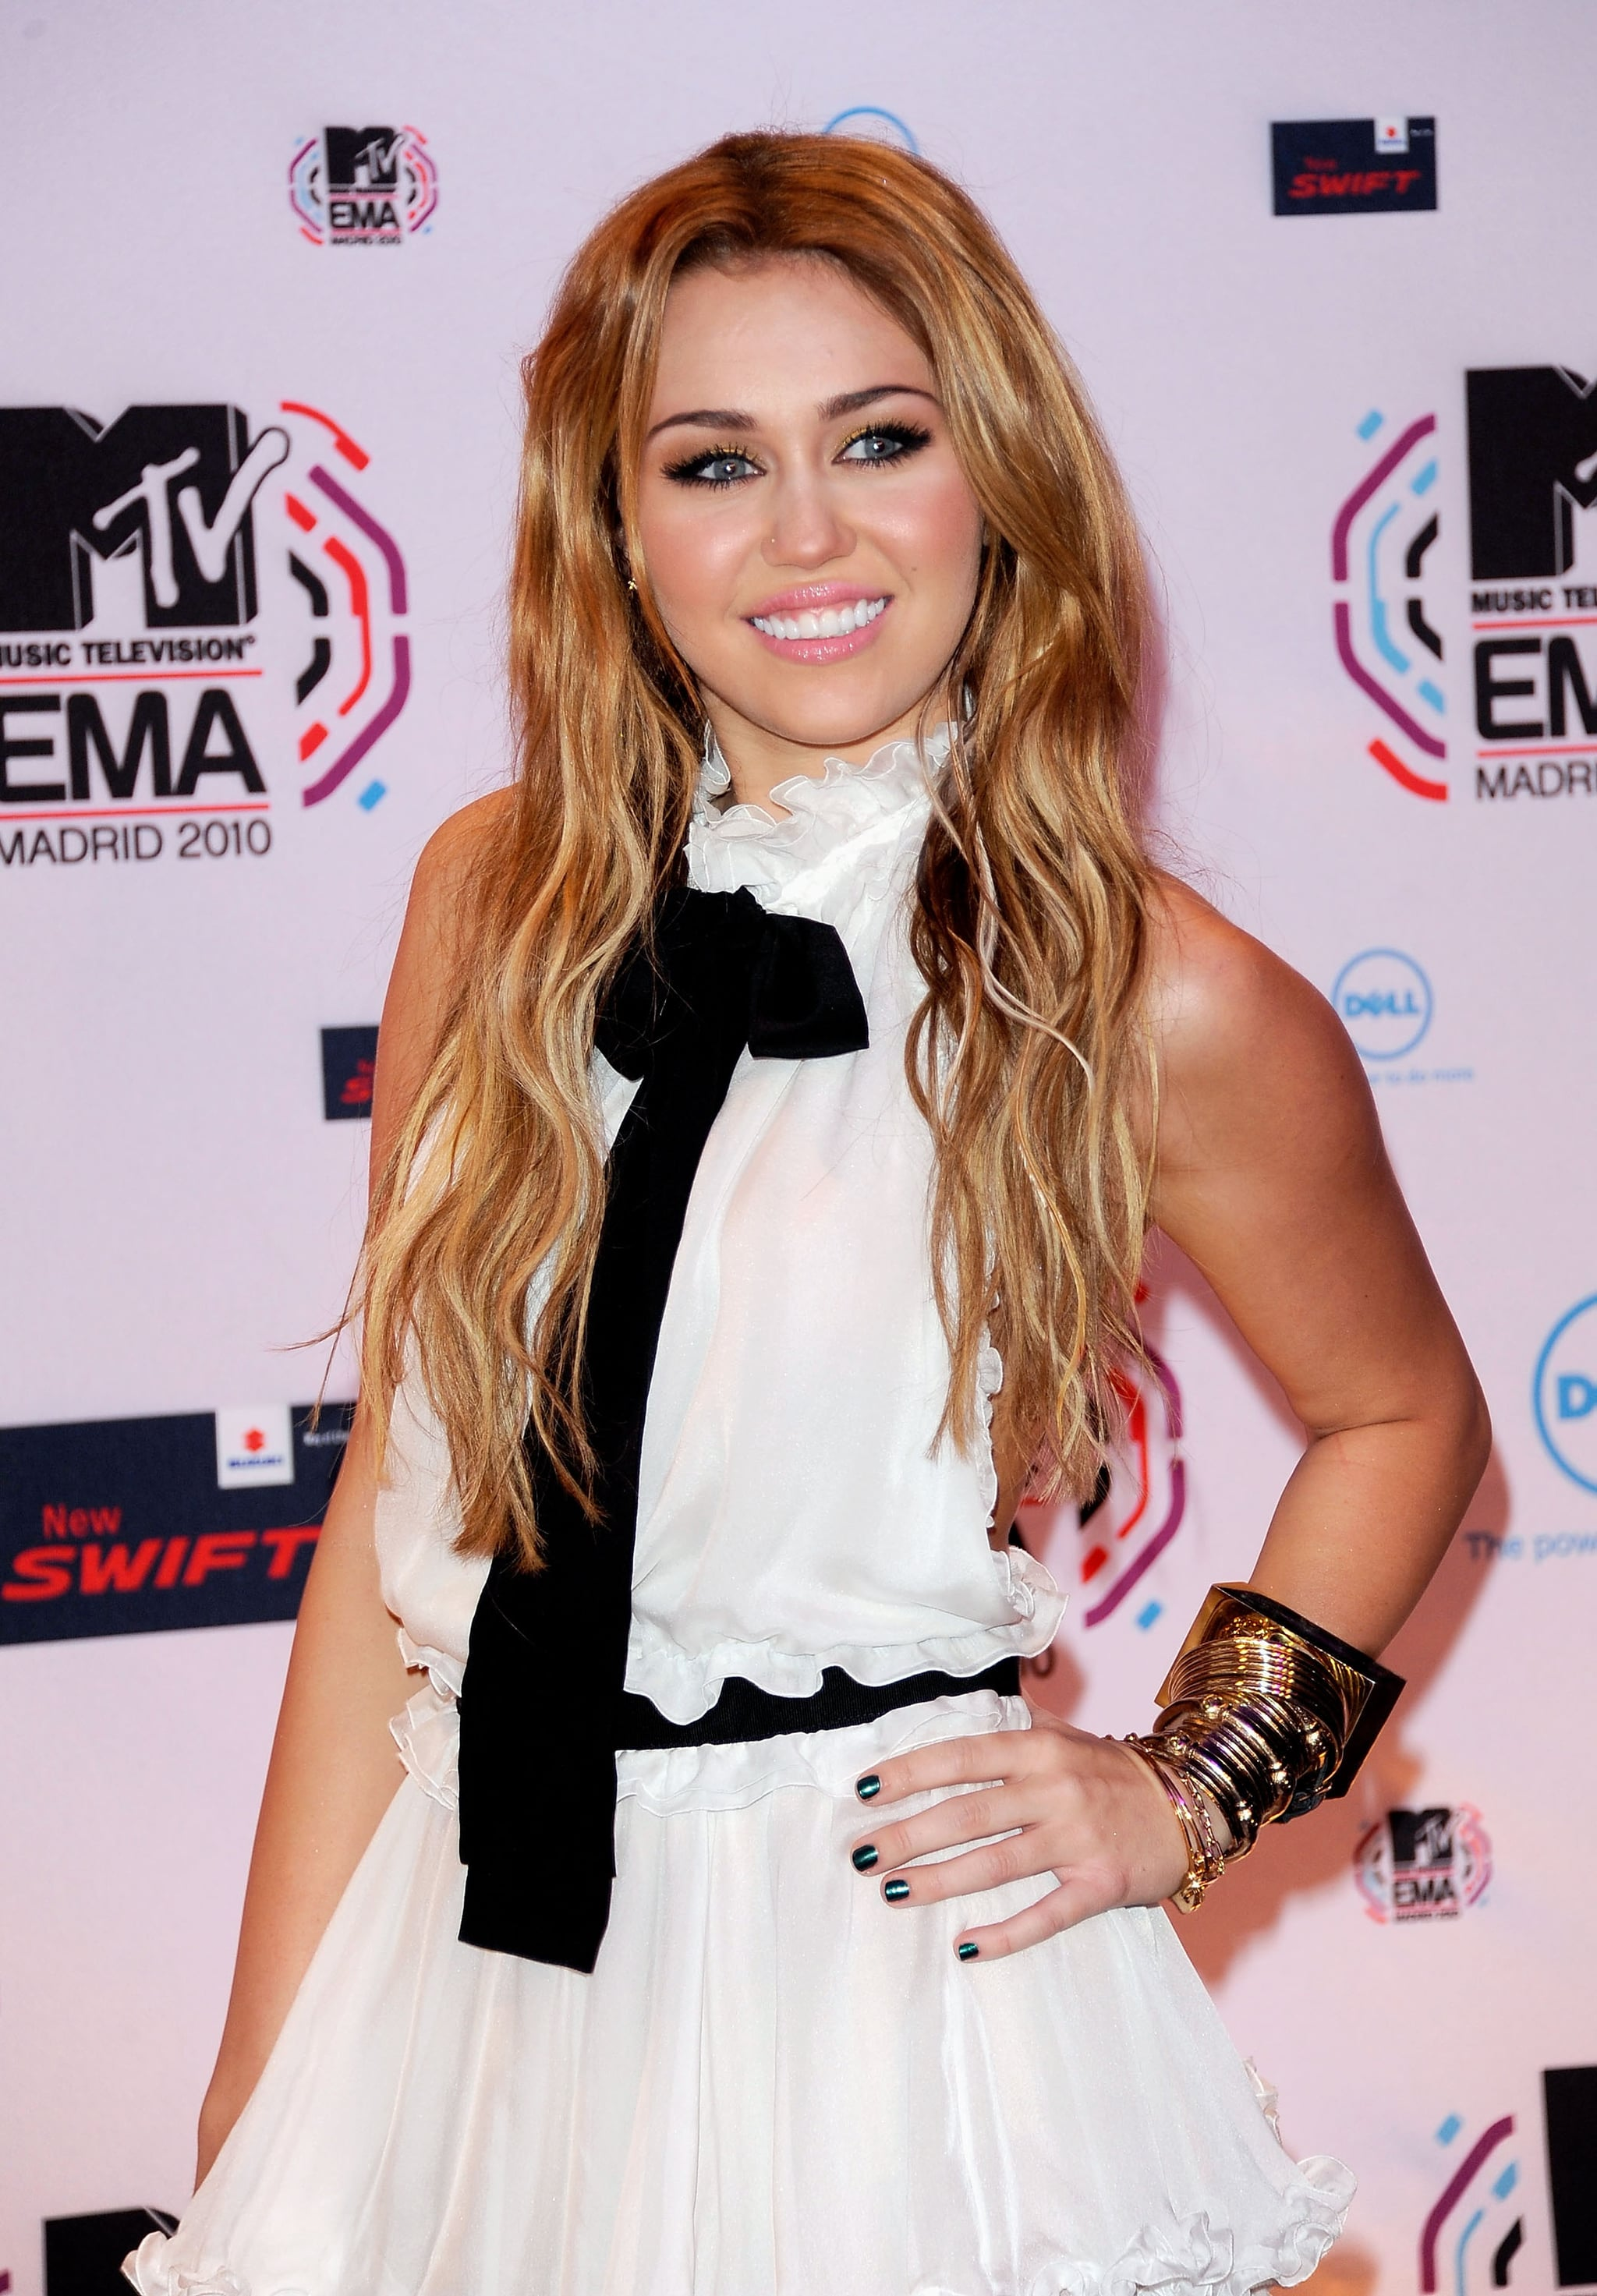 Miley cyrus ema awards are